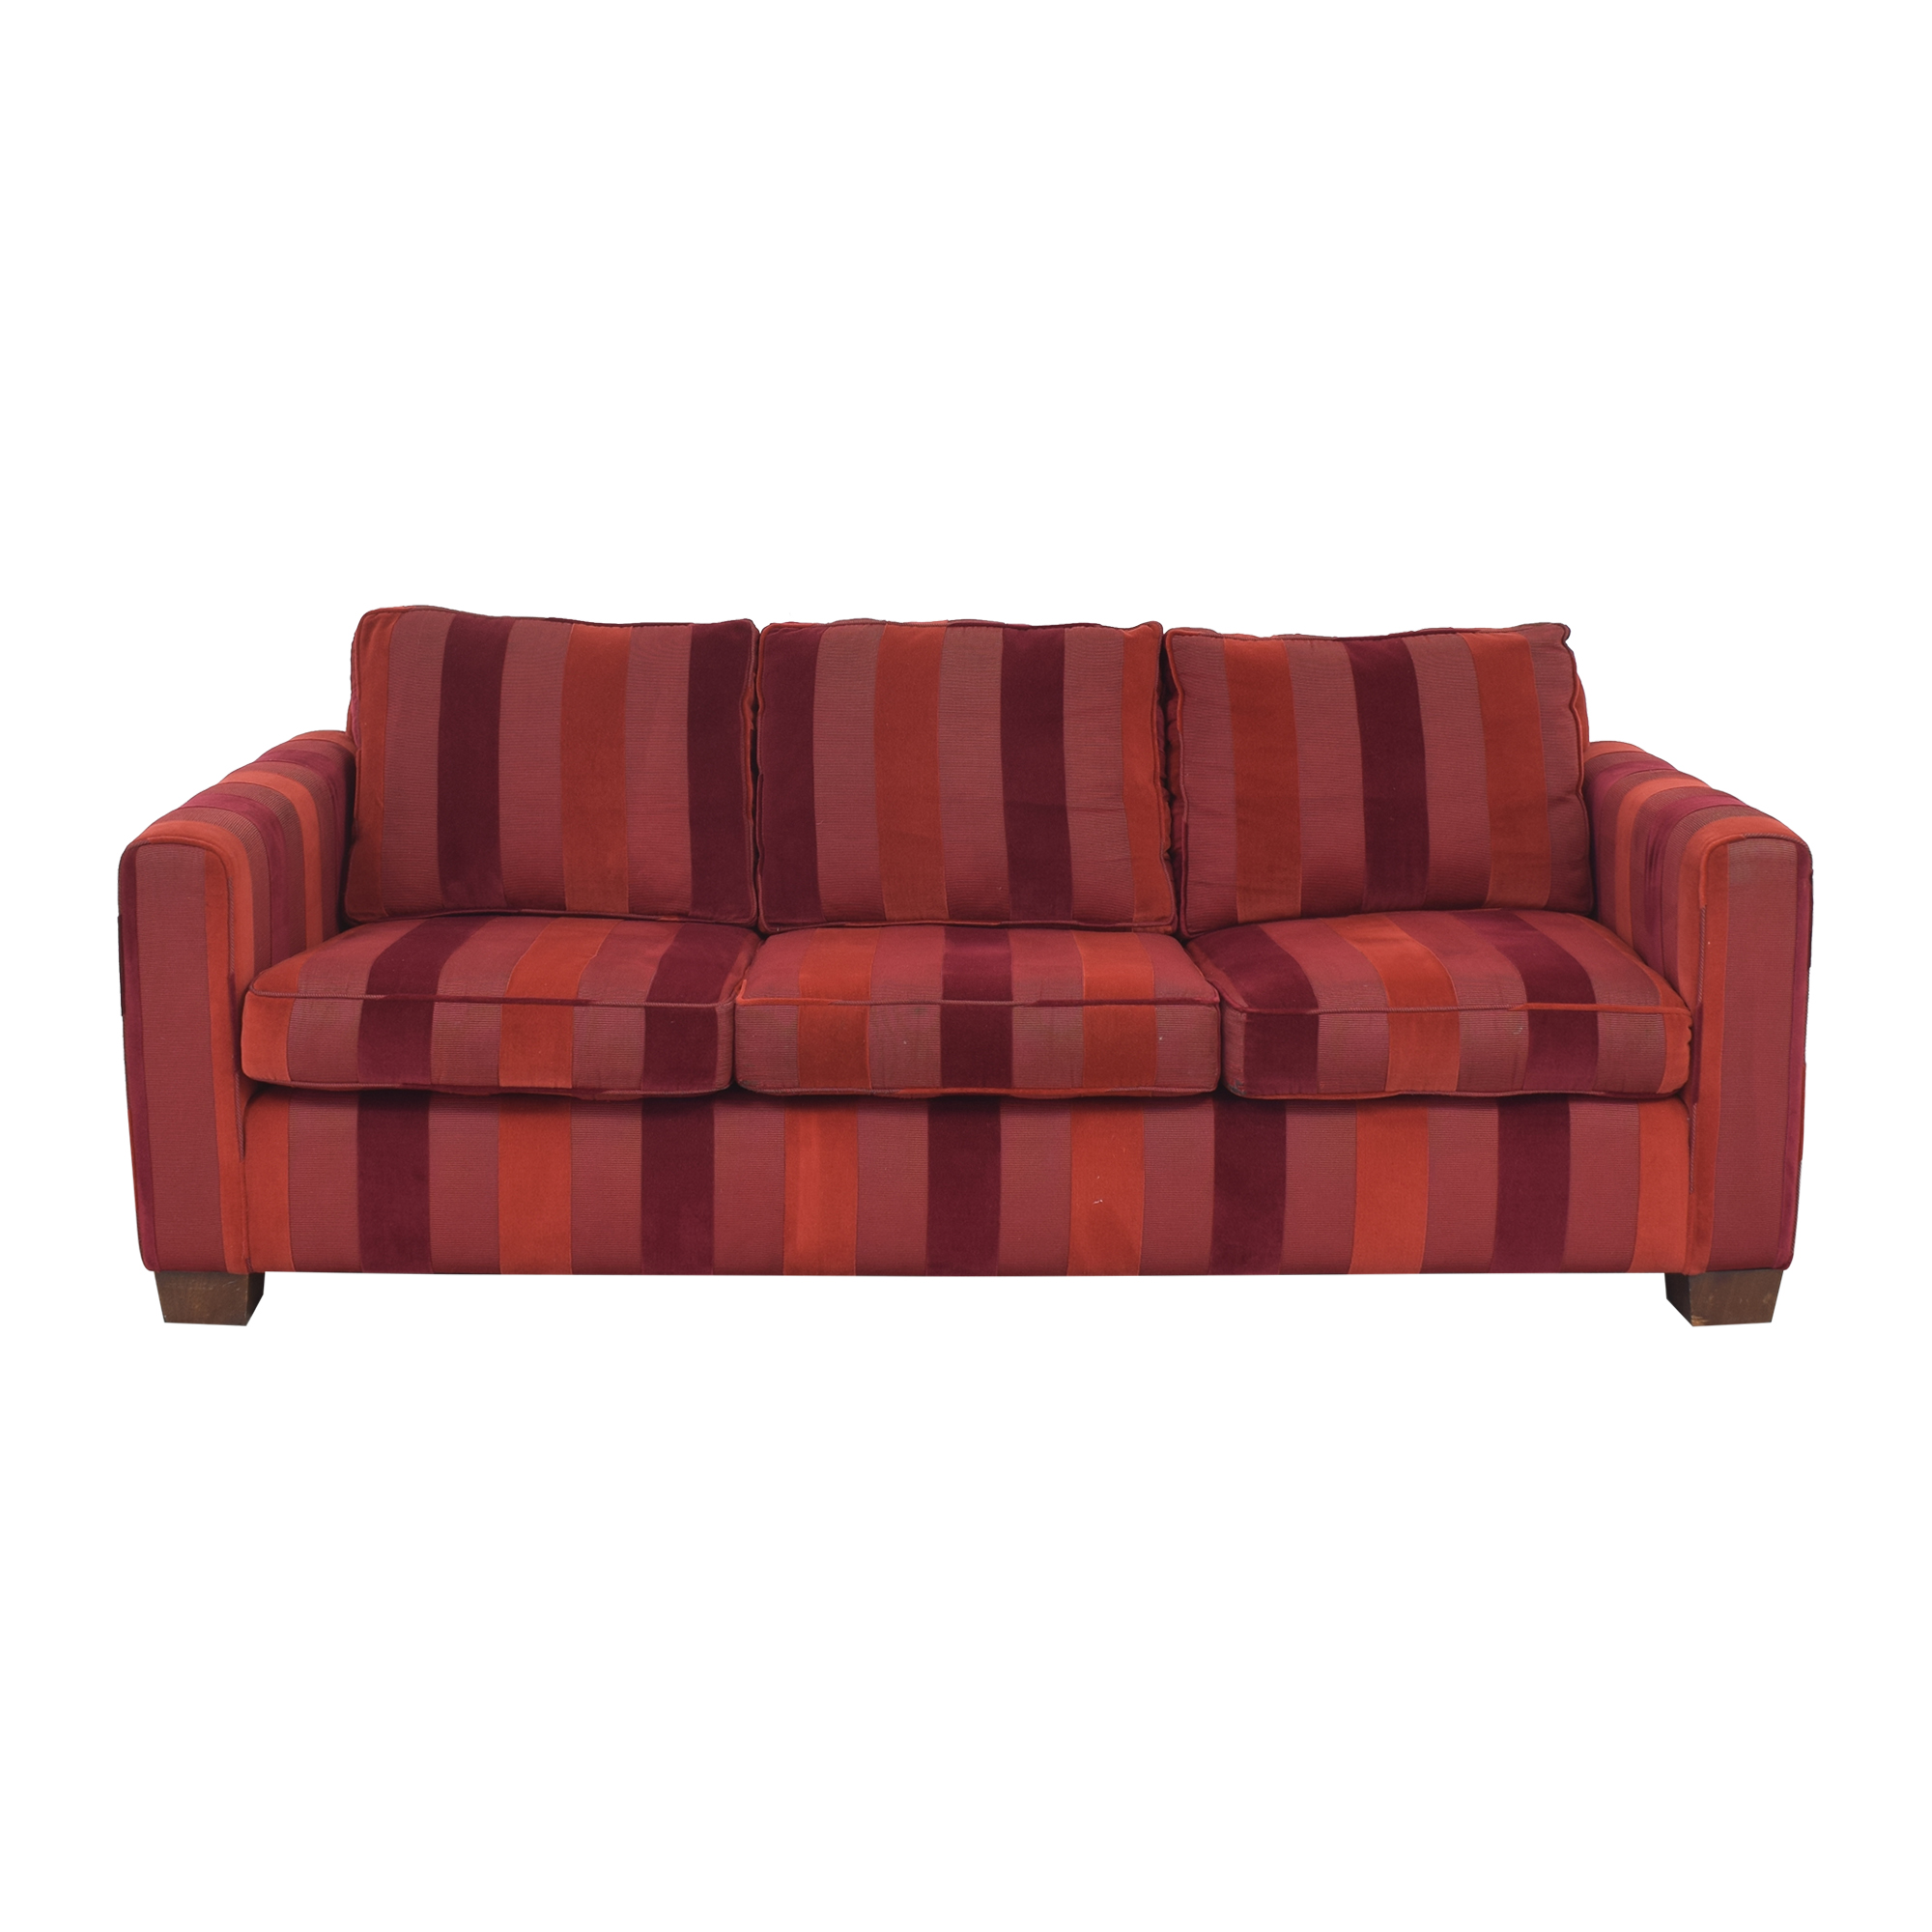 Striped Three Cushion Sofa for sale